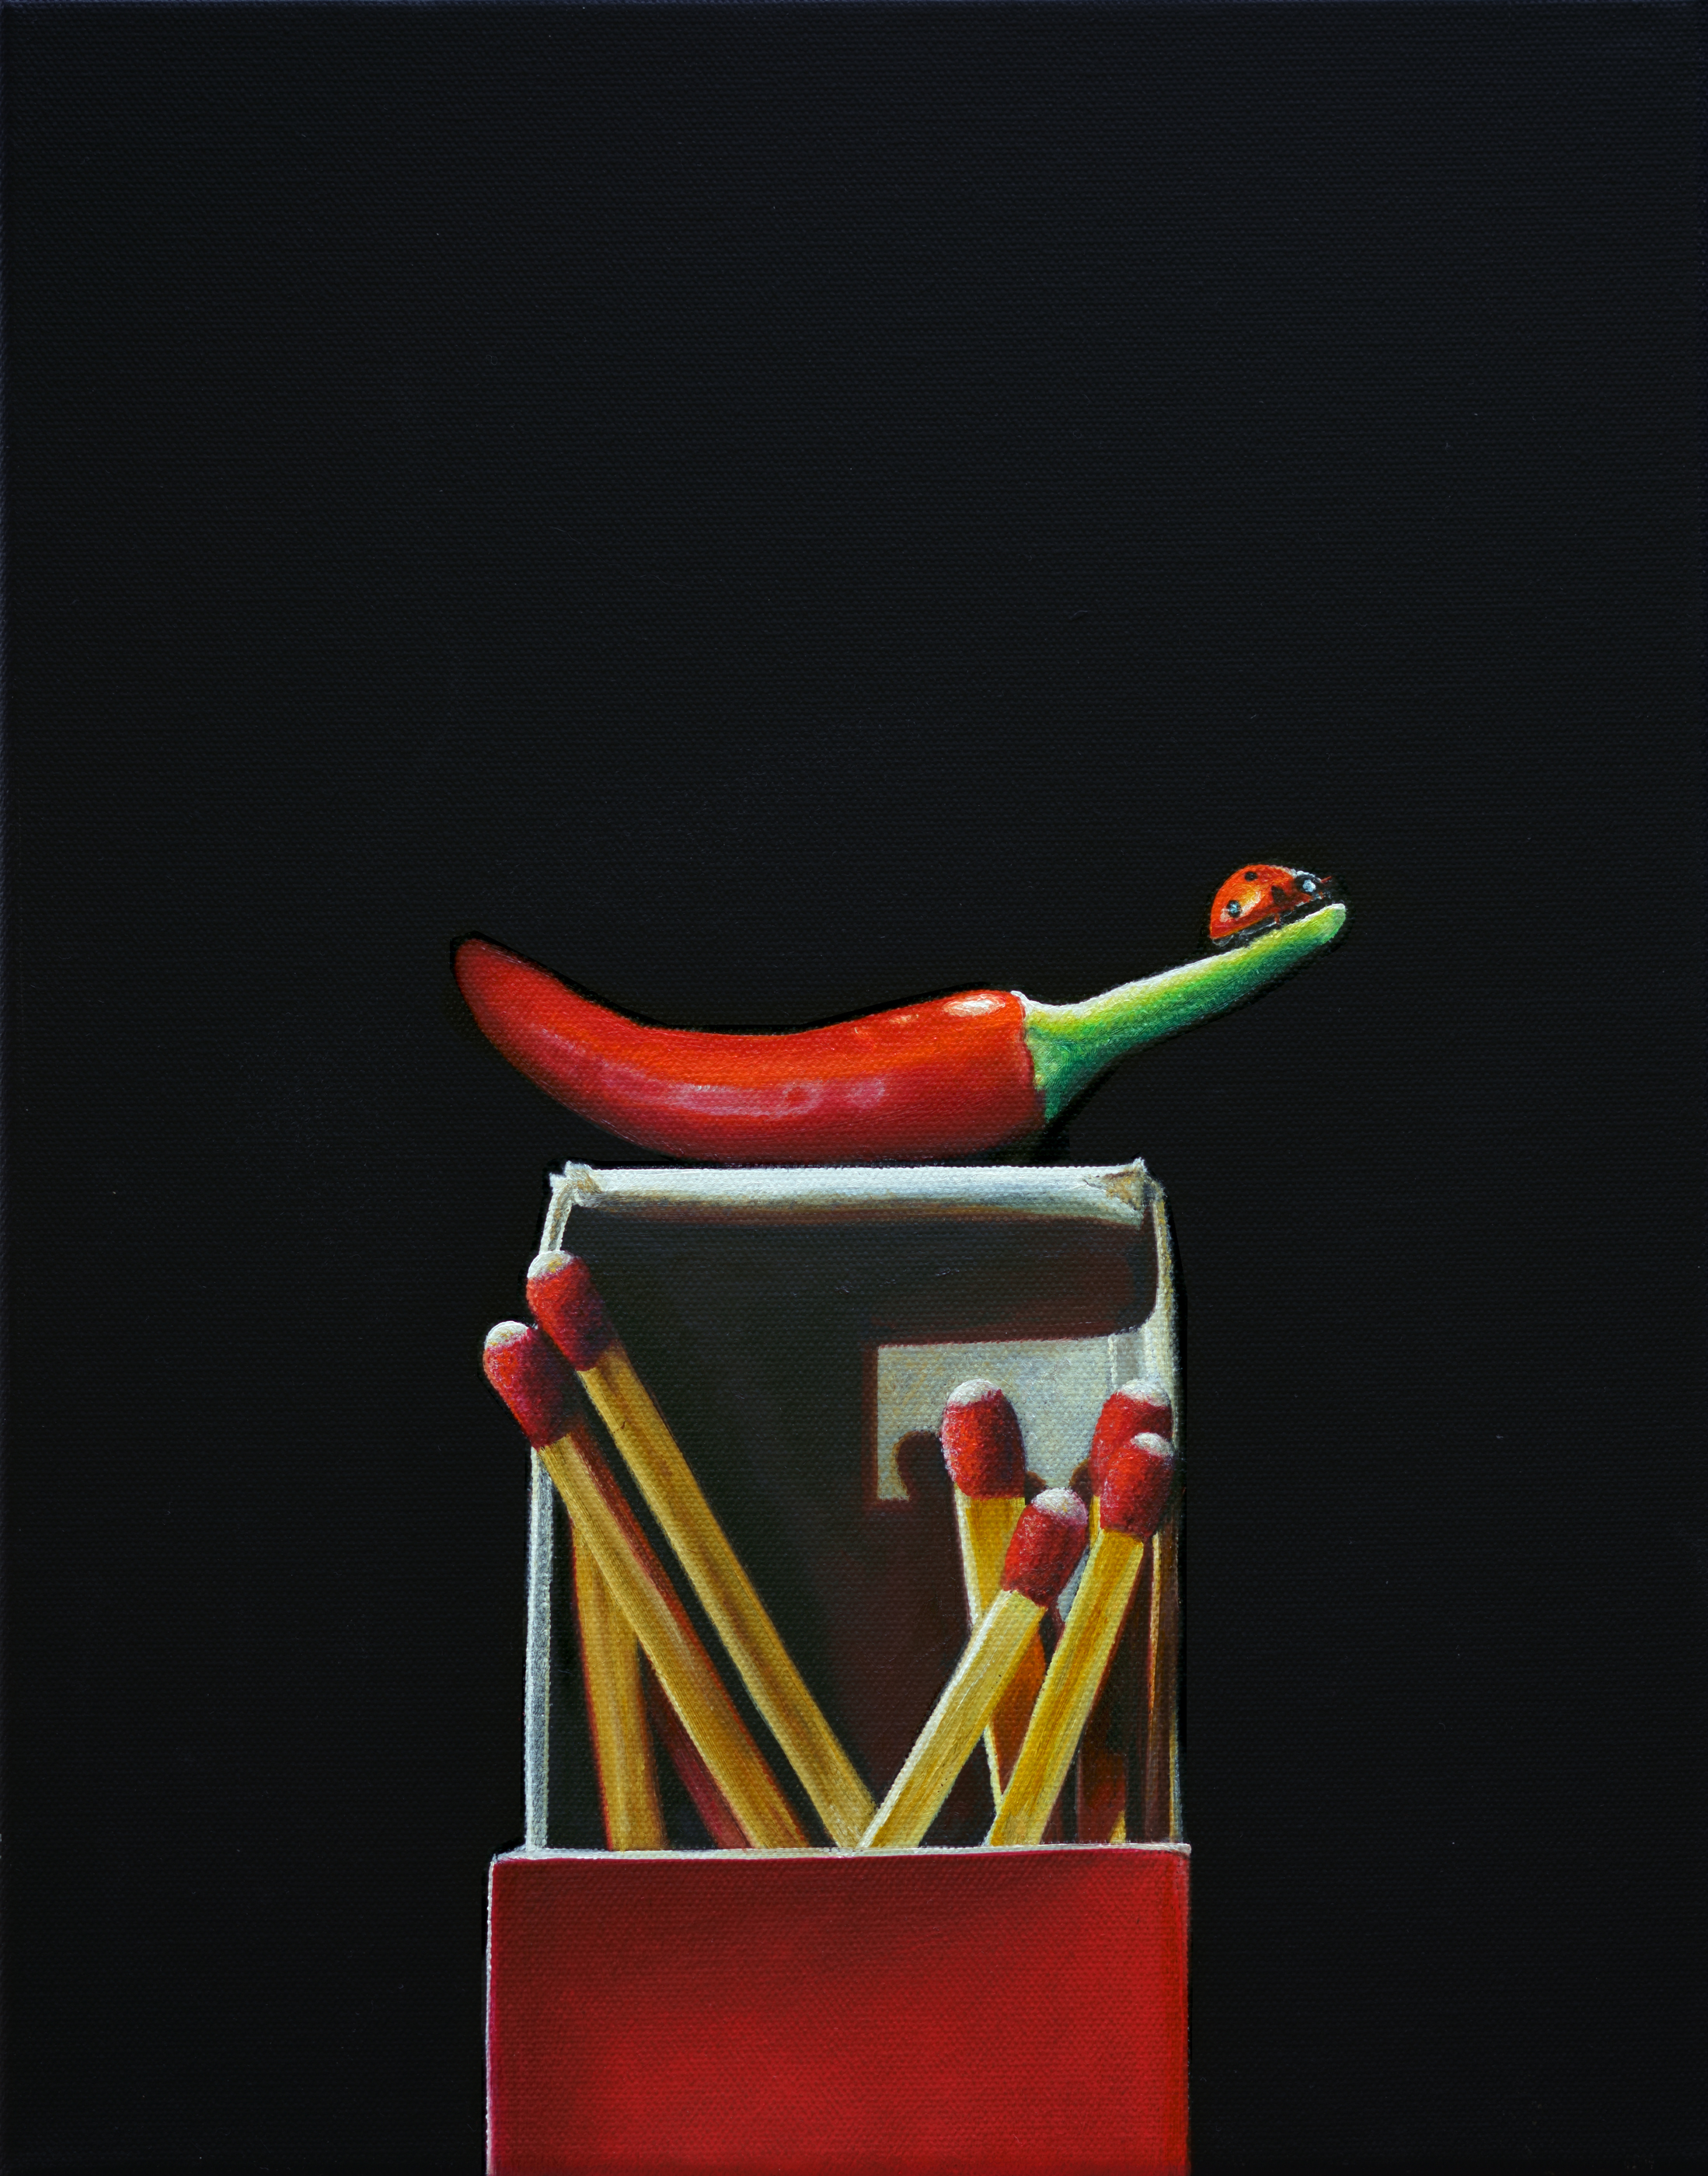 Red Hot | 11 x 14 | Oil on canvas